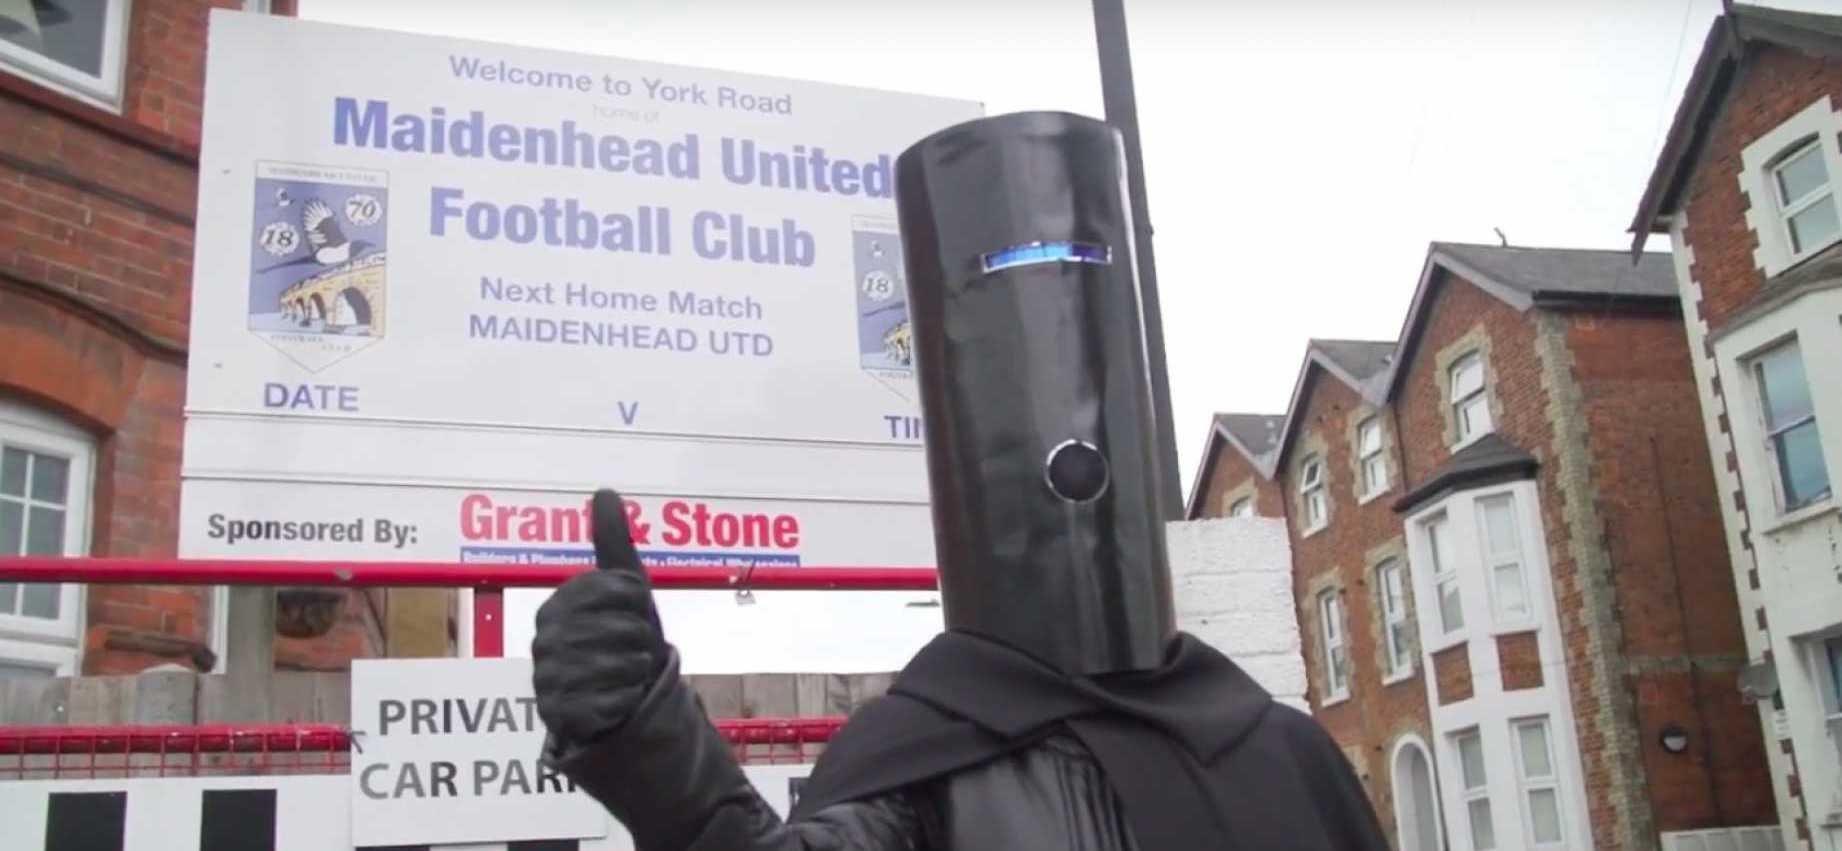 Lord Buckethead Thumbs Up Maidenhead United FC